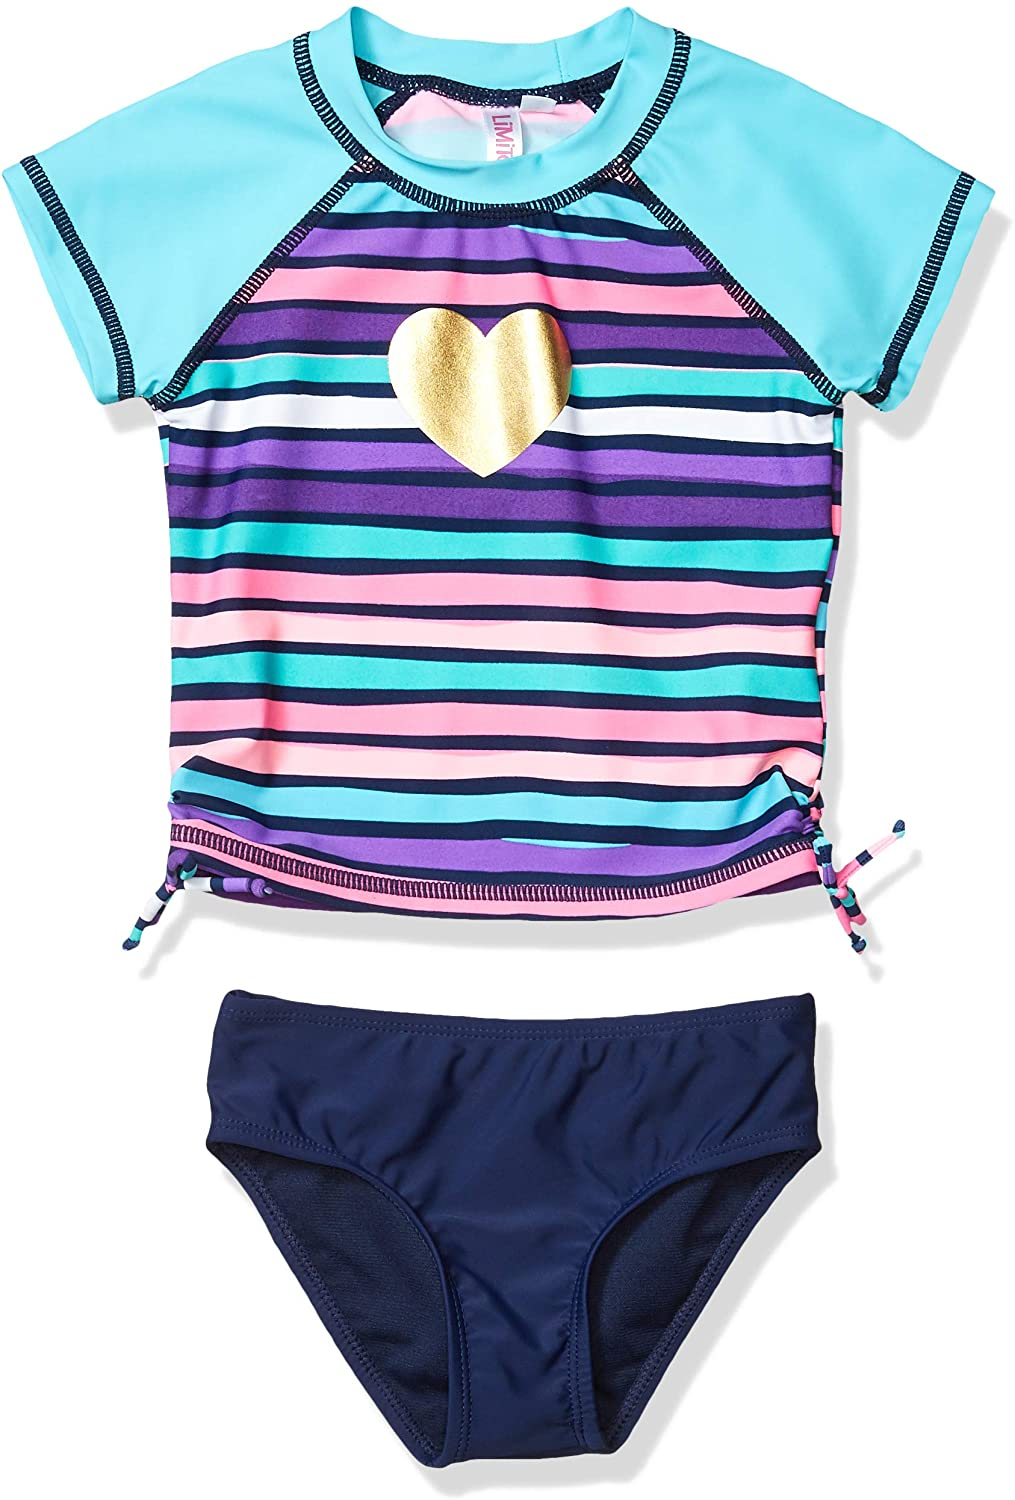 Limited Too Girls' Striped Two Piece Short Sleeve Swimsuit with Heart Graphic